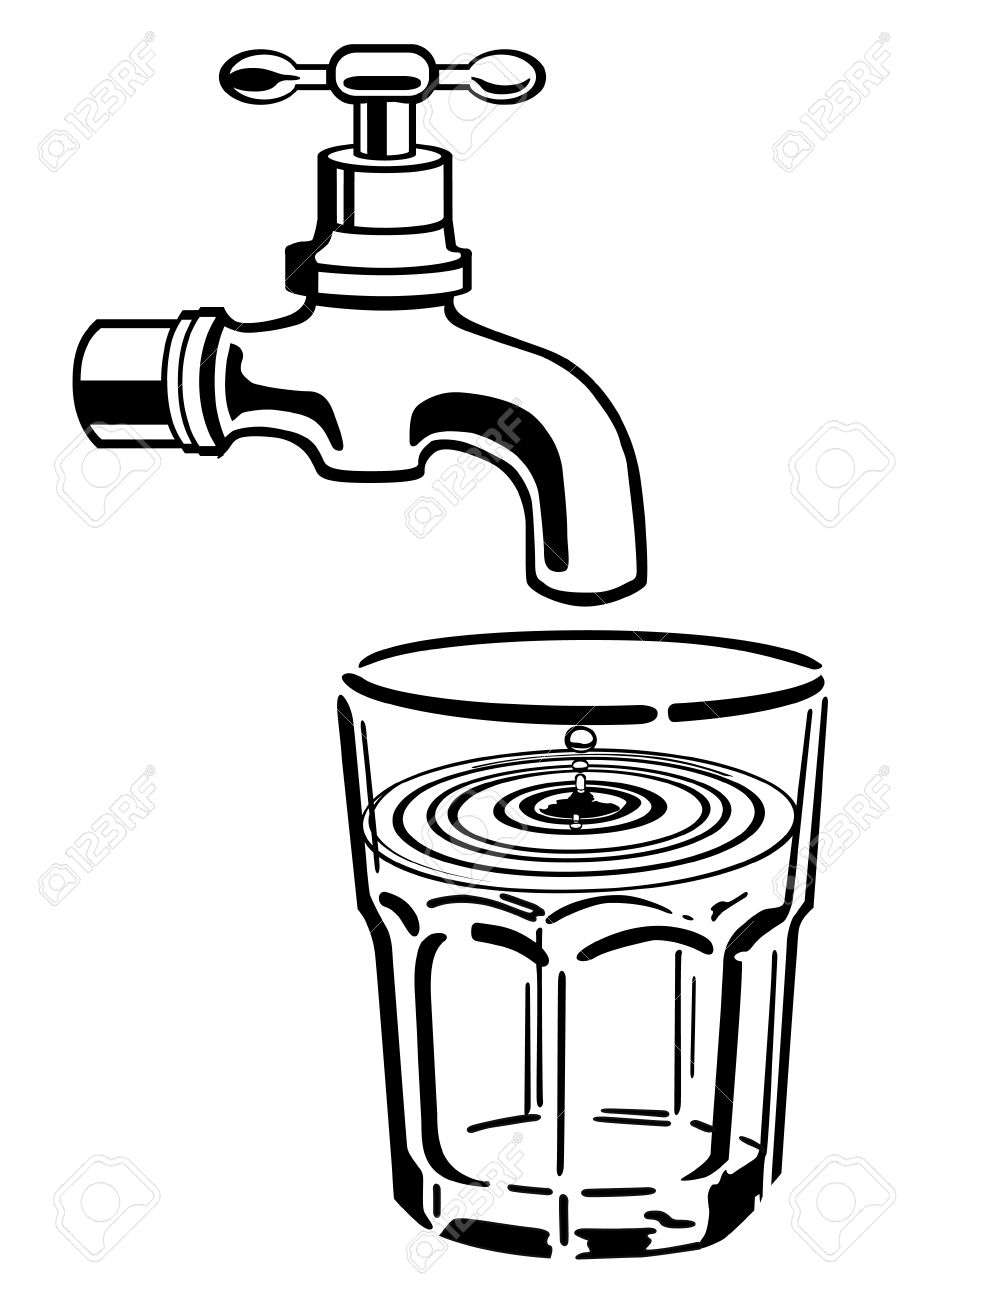 987x1300 Tap Water Clipart Black White Amp Tap Water Clip Art Black